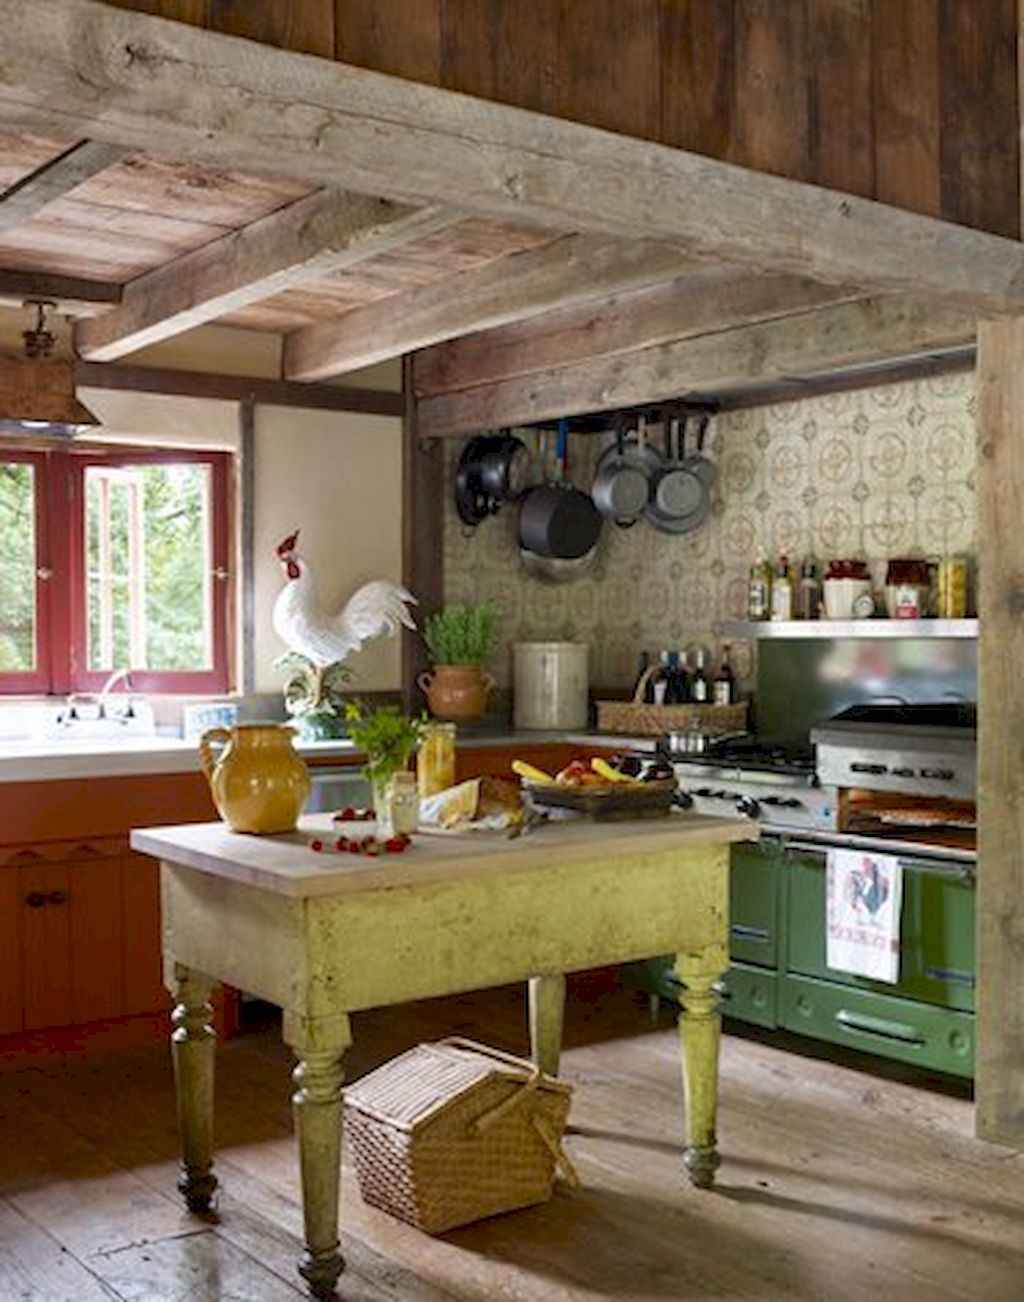 Incredible french country kitchen design ideas (23)